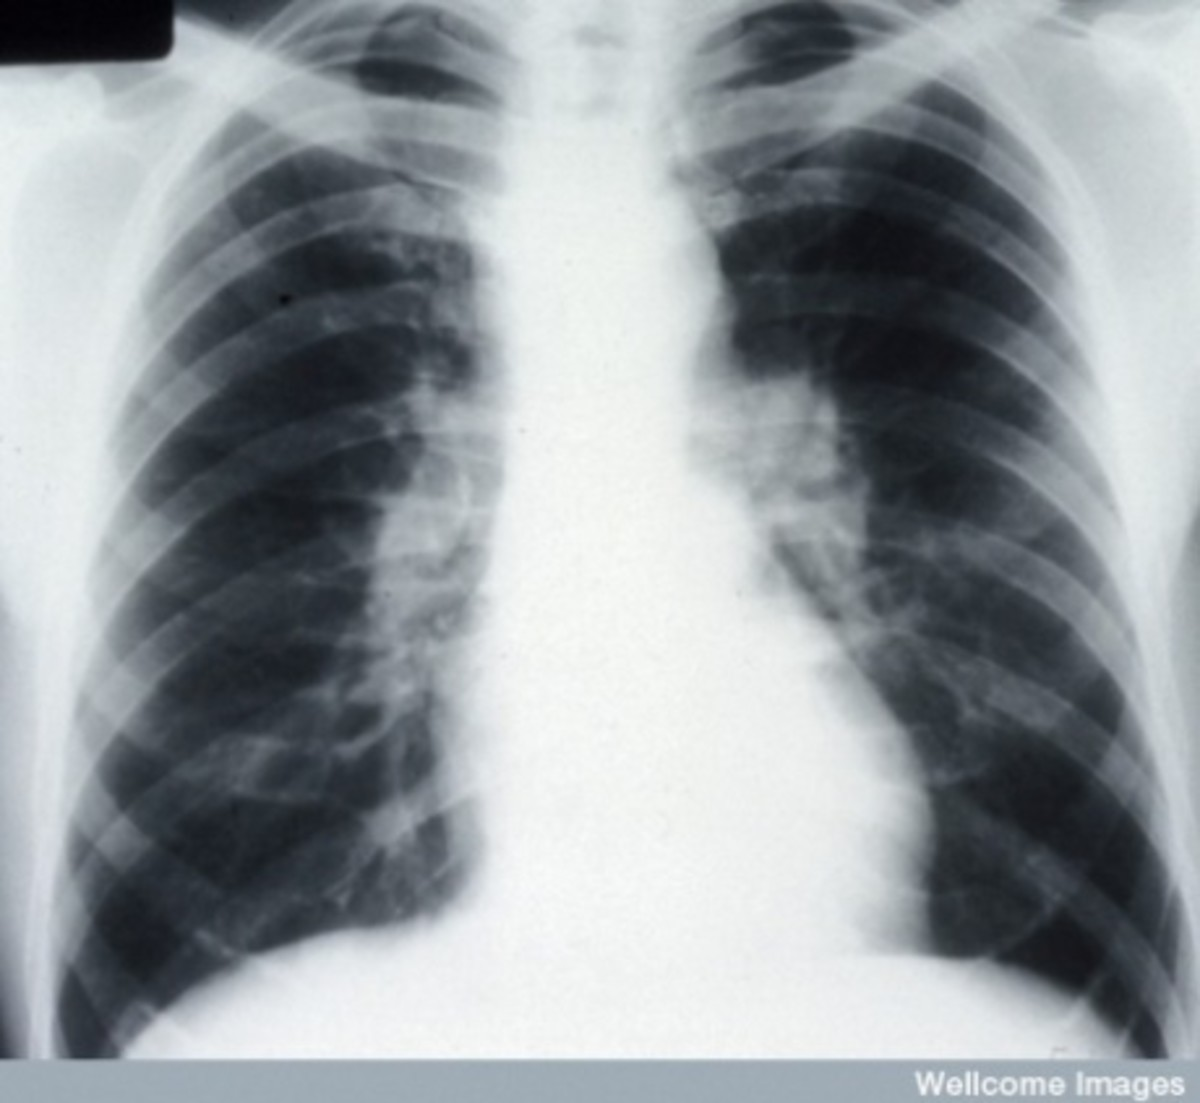 The disease typically limits the amount of air drawn into the lungs, but produces higher than normal expiratory flow ratios. Obstructive lung changes, causing a decrease in the amount of air that can be exhaled, may occur when enlarged lymph nodes in